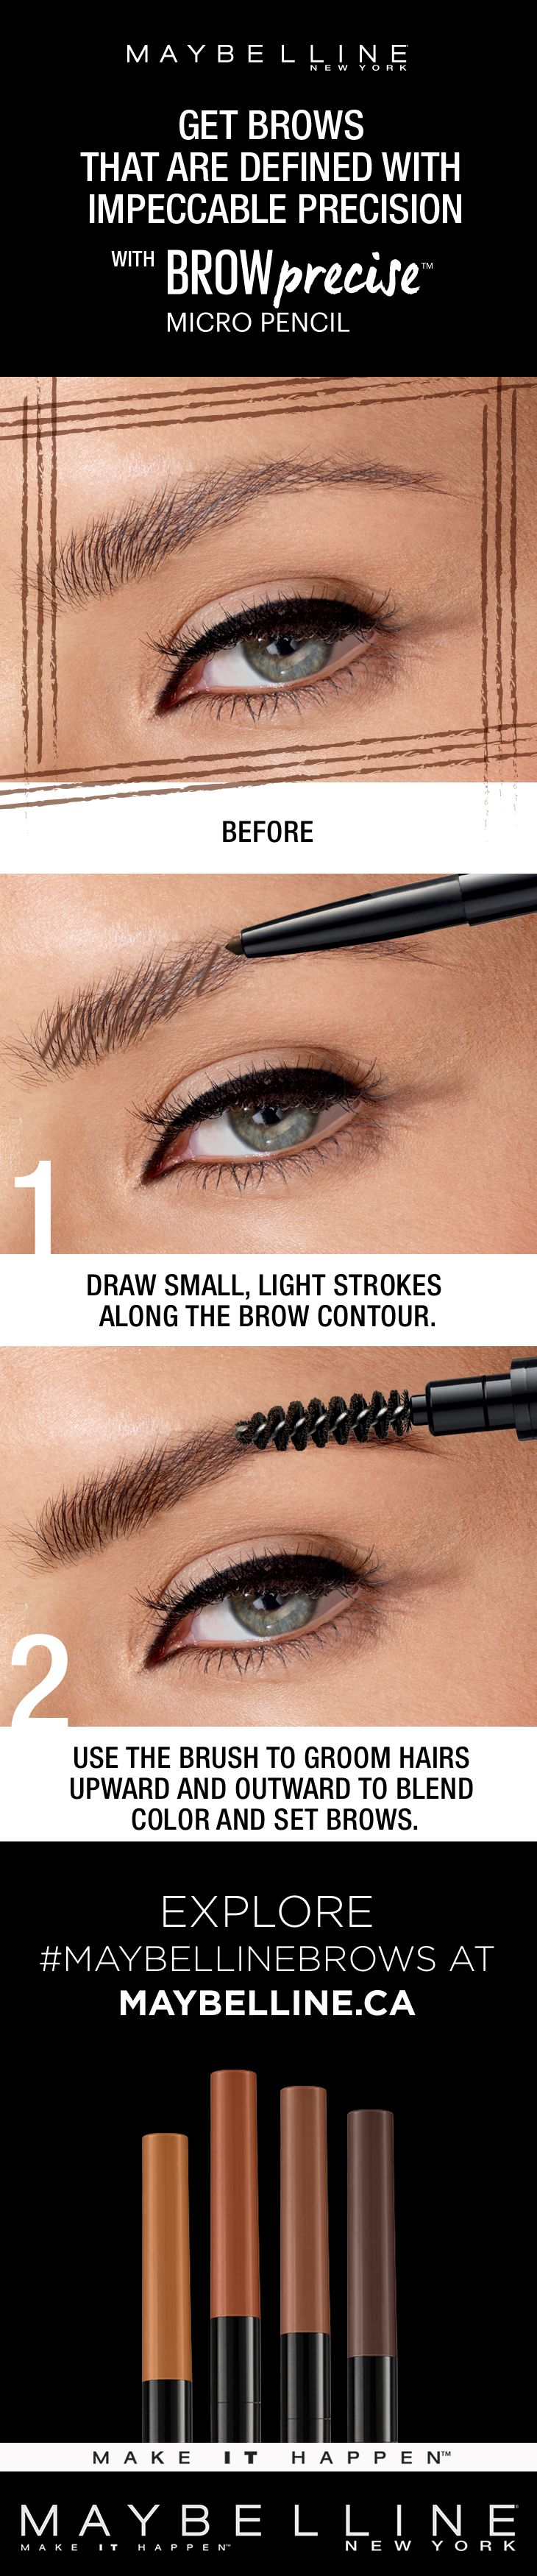 Brows with impeccable precision are yours to own. Using Maybelline's Brow Precise Micro Pencil, there's micro-precision in every stroke! Easily fill and blend in to achieve full and natural-looking brow using the ultra-fine 1.5 mm tip and grooming brush.